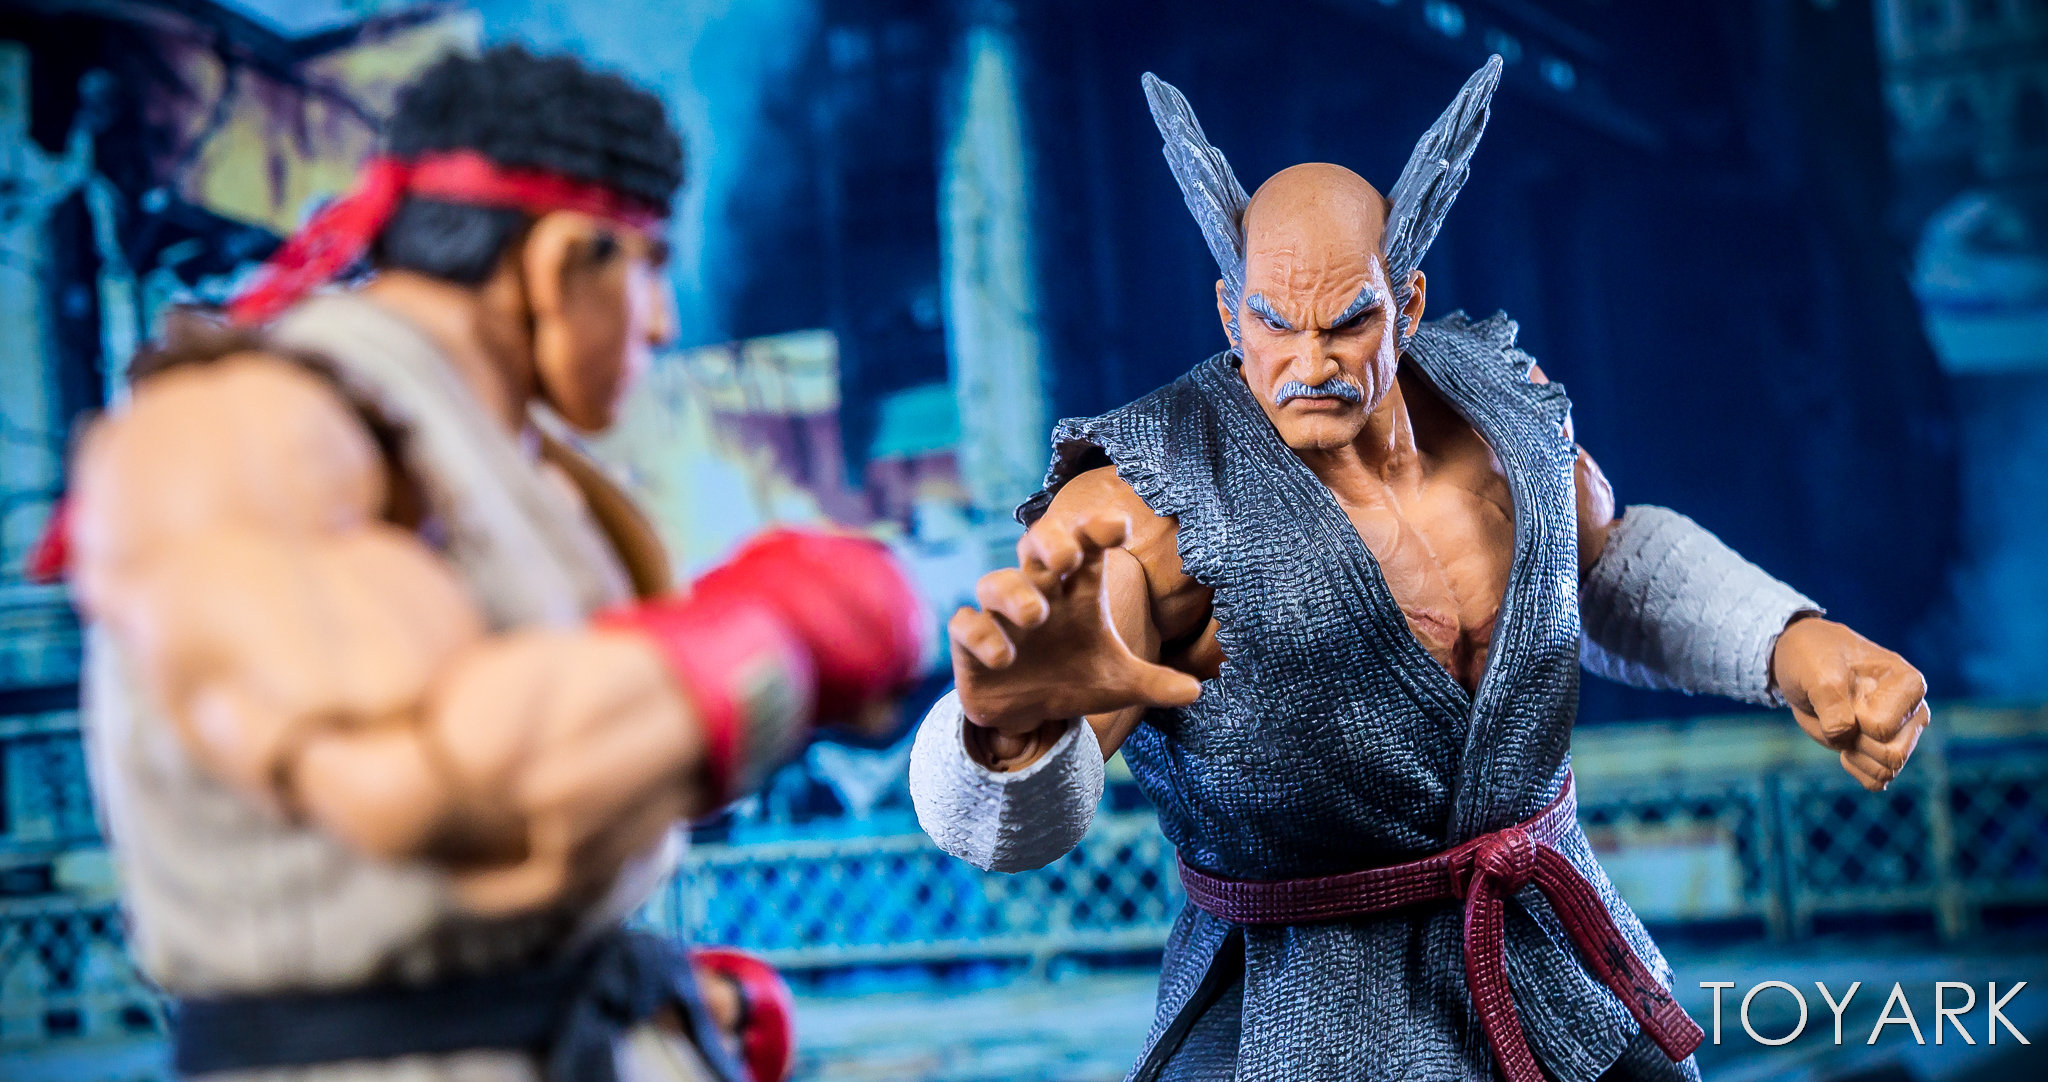 https://news.toyark.com/wp-content/uploads/sites/4/2018/05/Storm-Heihachi-Figure-029.jpg